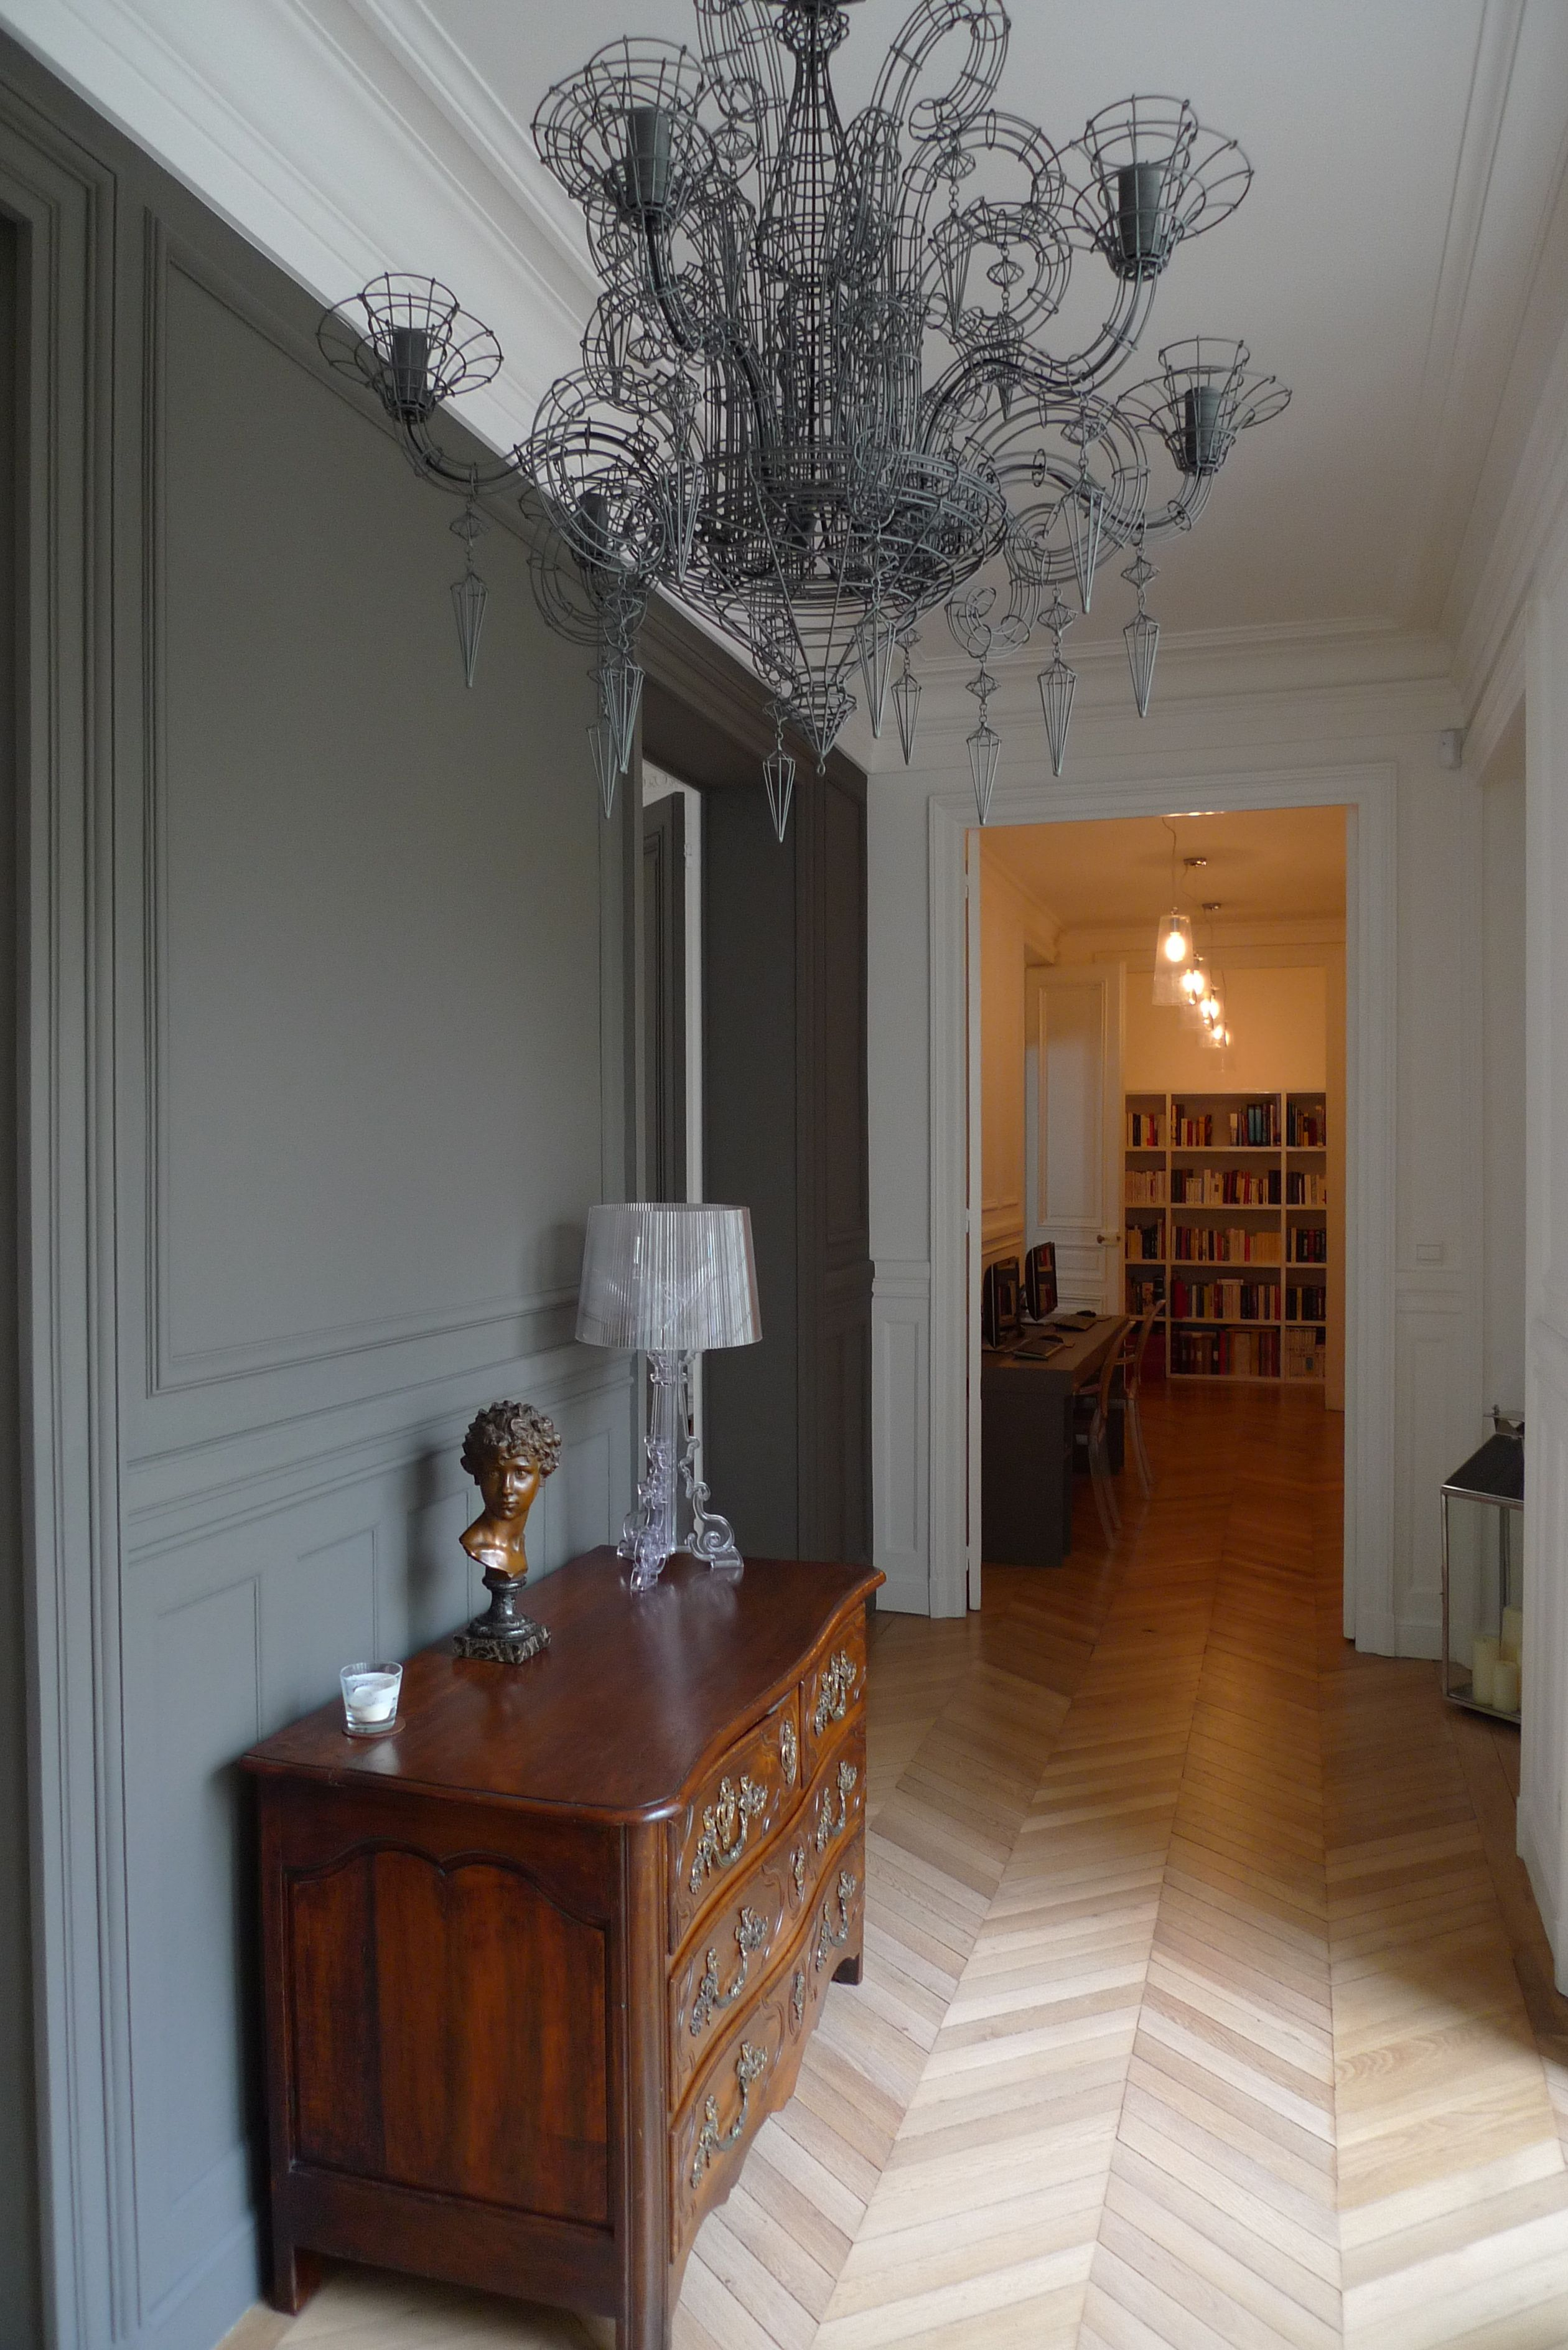 Couloir d 39 un appartement ancien avec lustre design for Meuble entree appartement